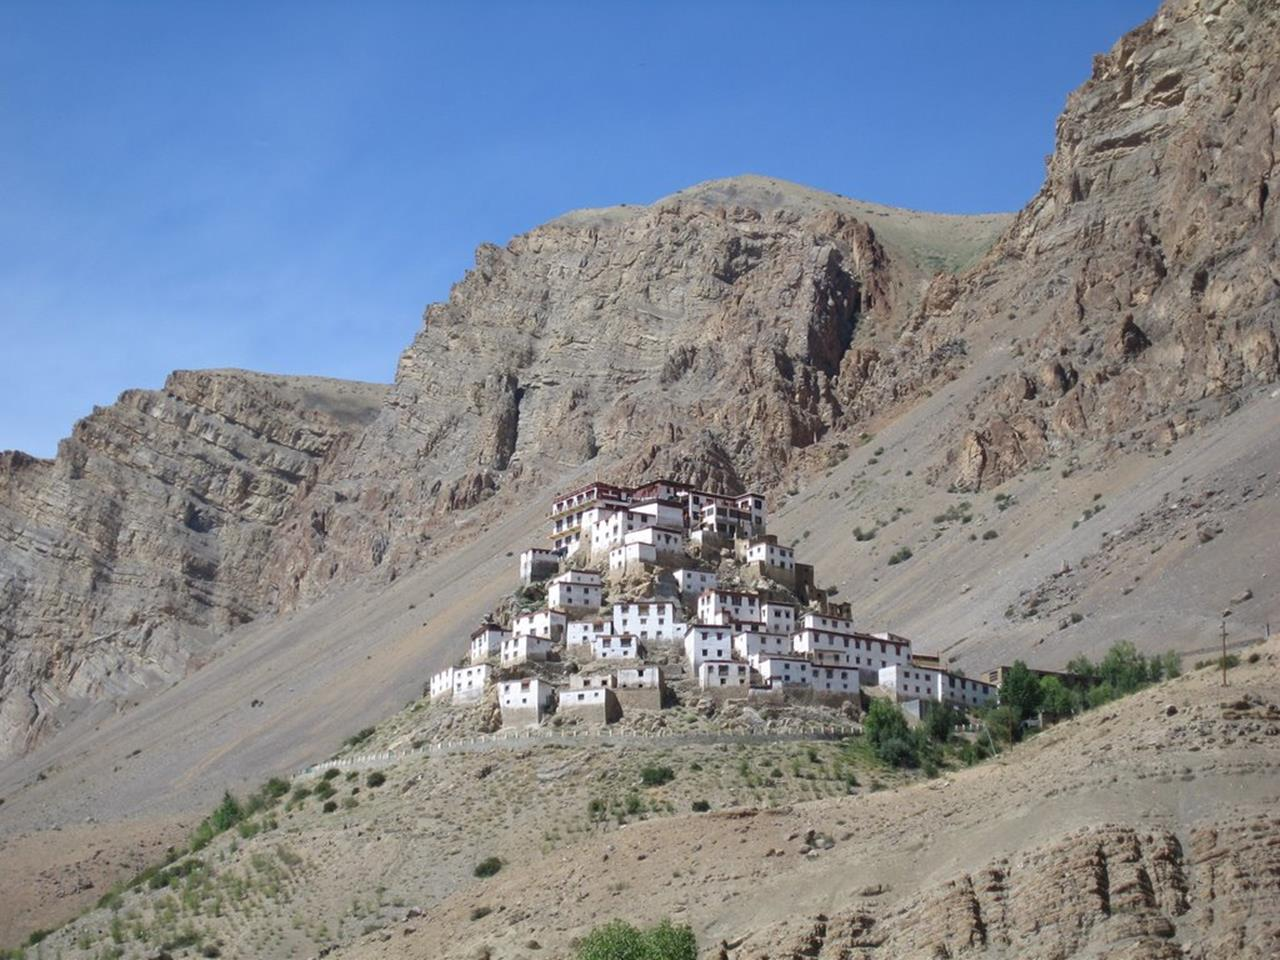 Desktop Wallpaper Quotes Love Trip Guide To Spiti Valley India Xcitefun Net